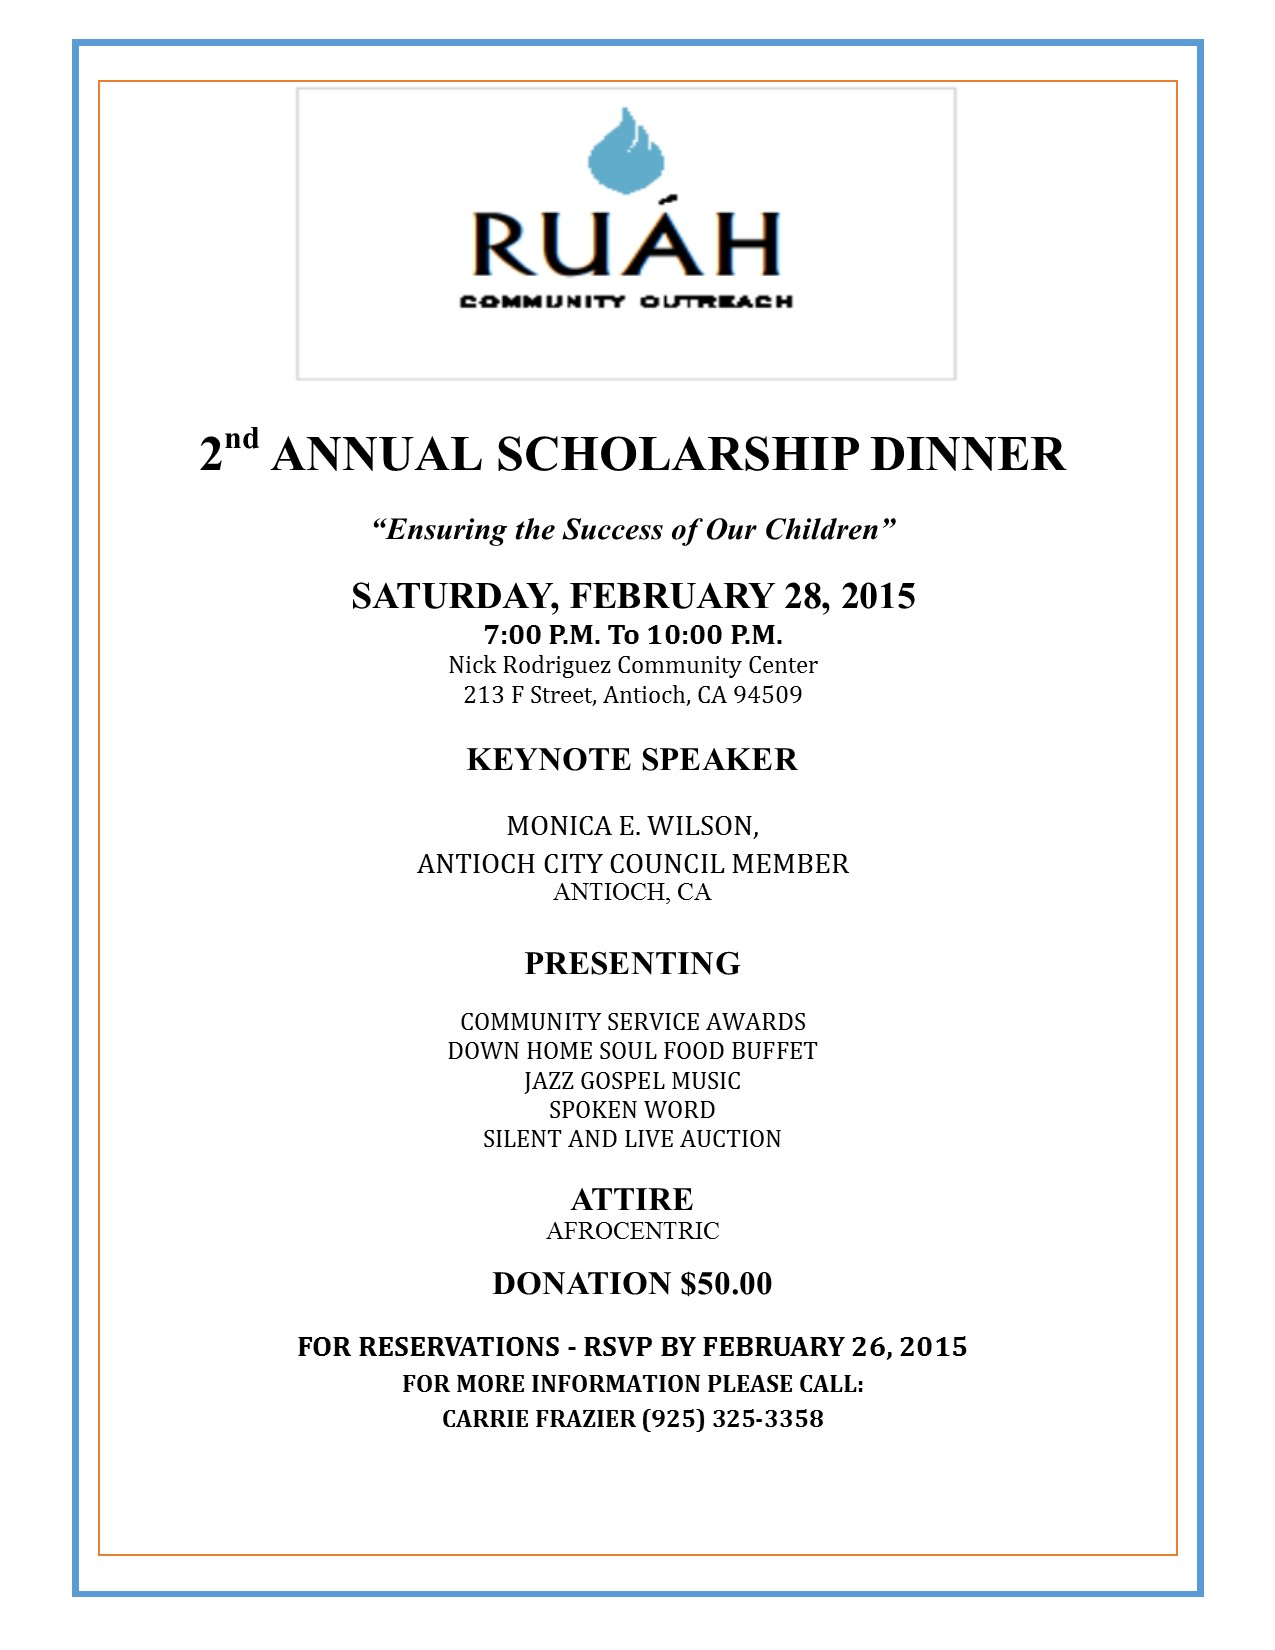 RUAH Tickets still available for RUAH Community Outreach fundraiser in Antioch Feb. 28